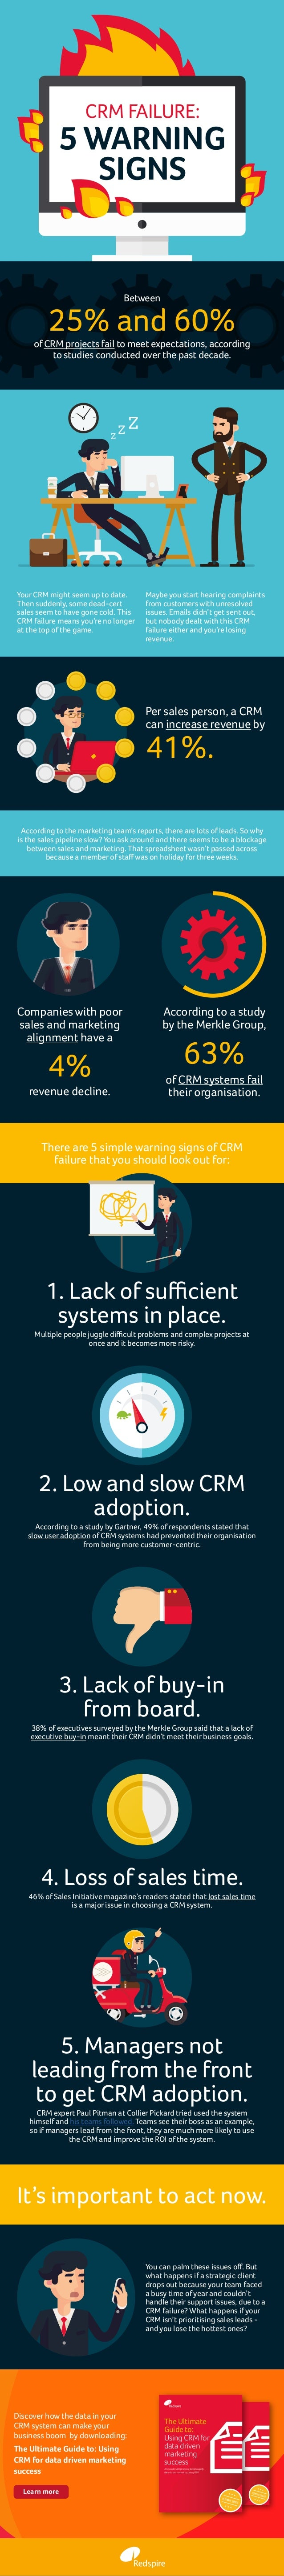 Between 25% and 60% of CRM projects fail to meet expectations, according to studies conducted over the past decade. Your C...